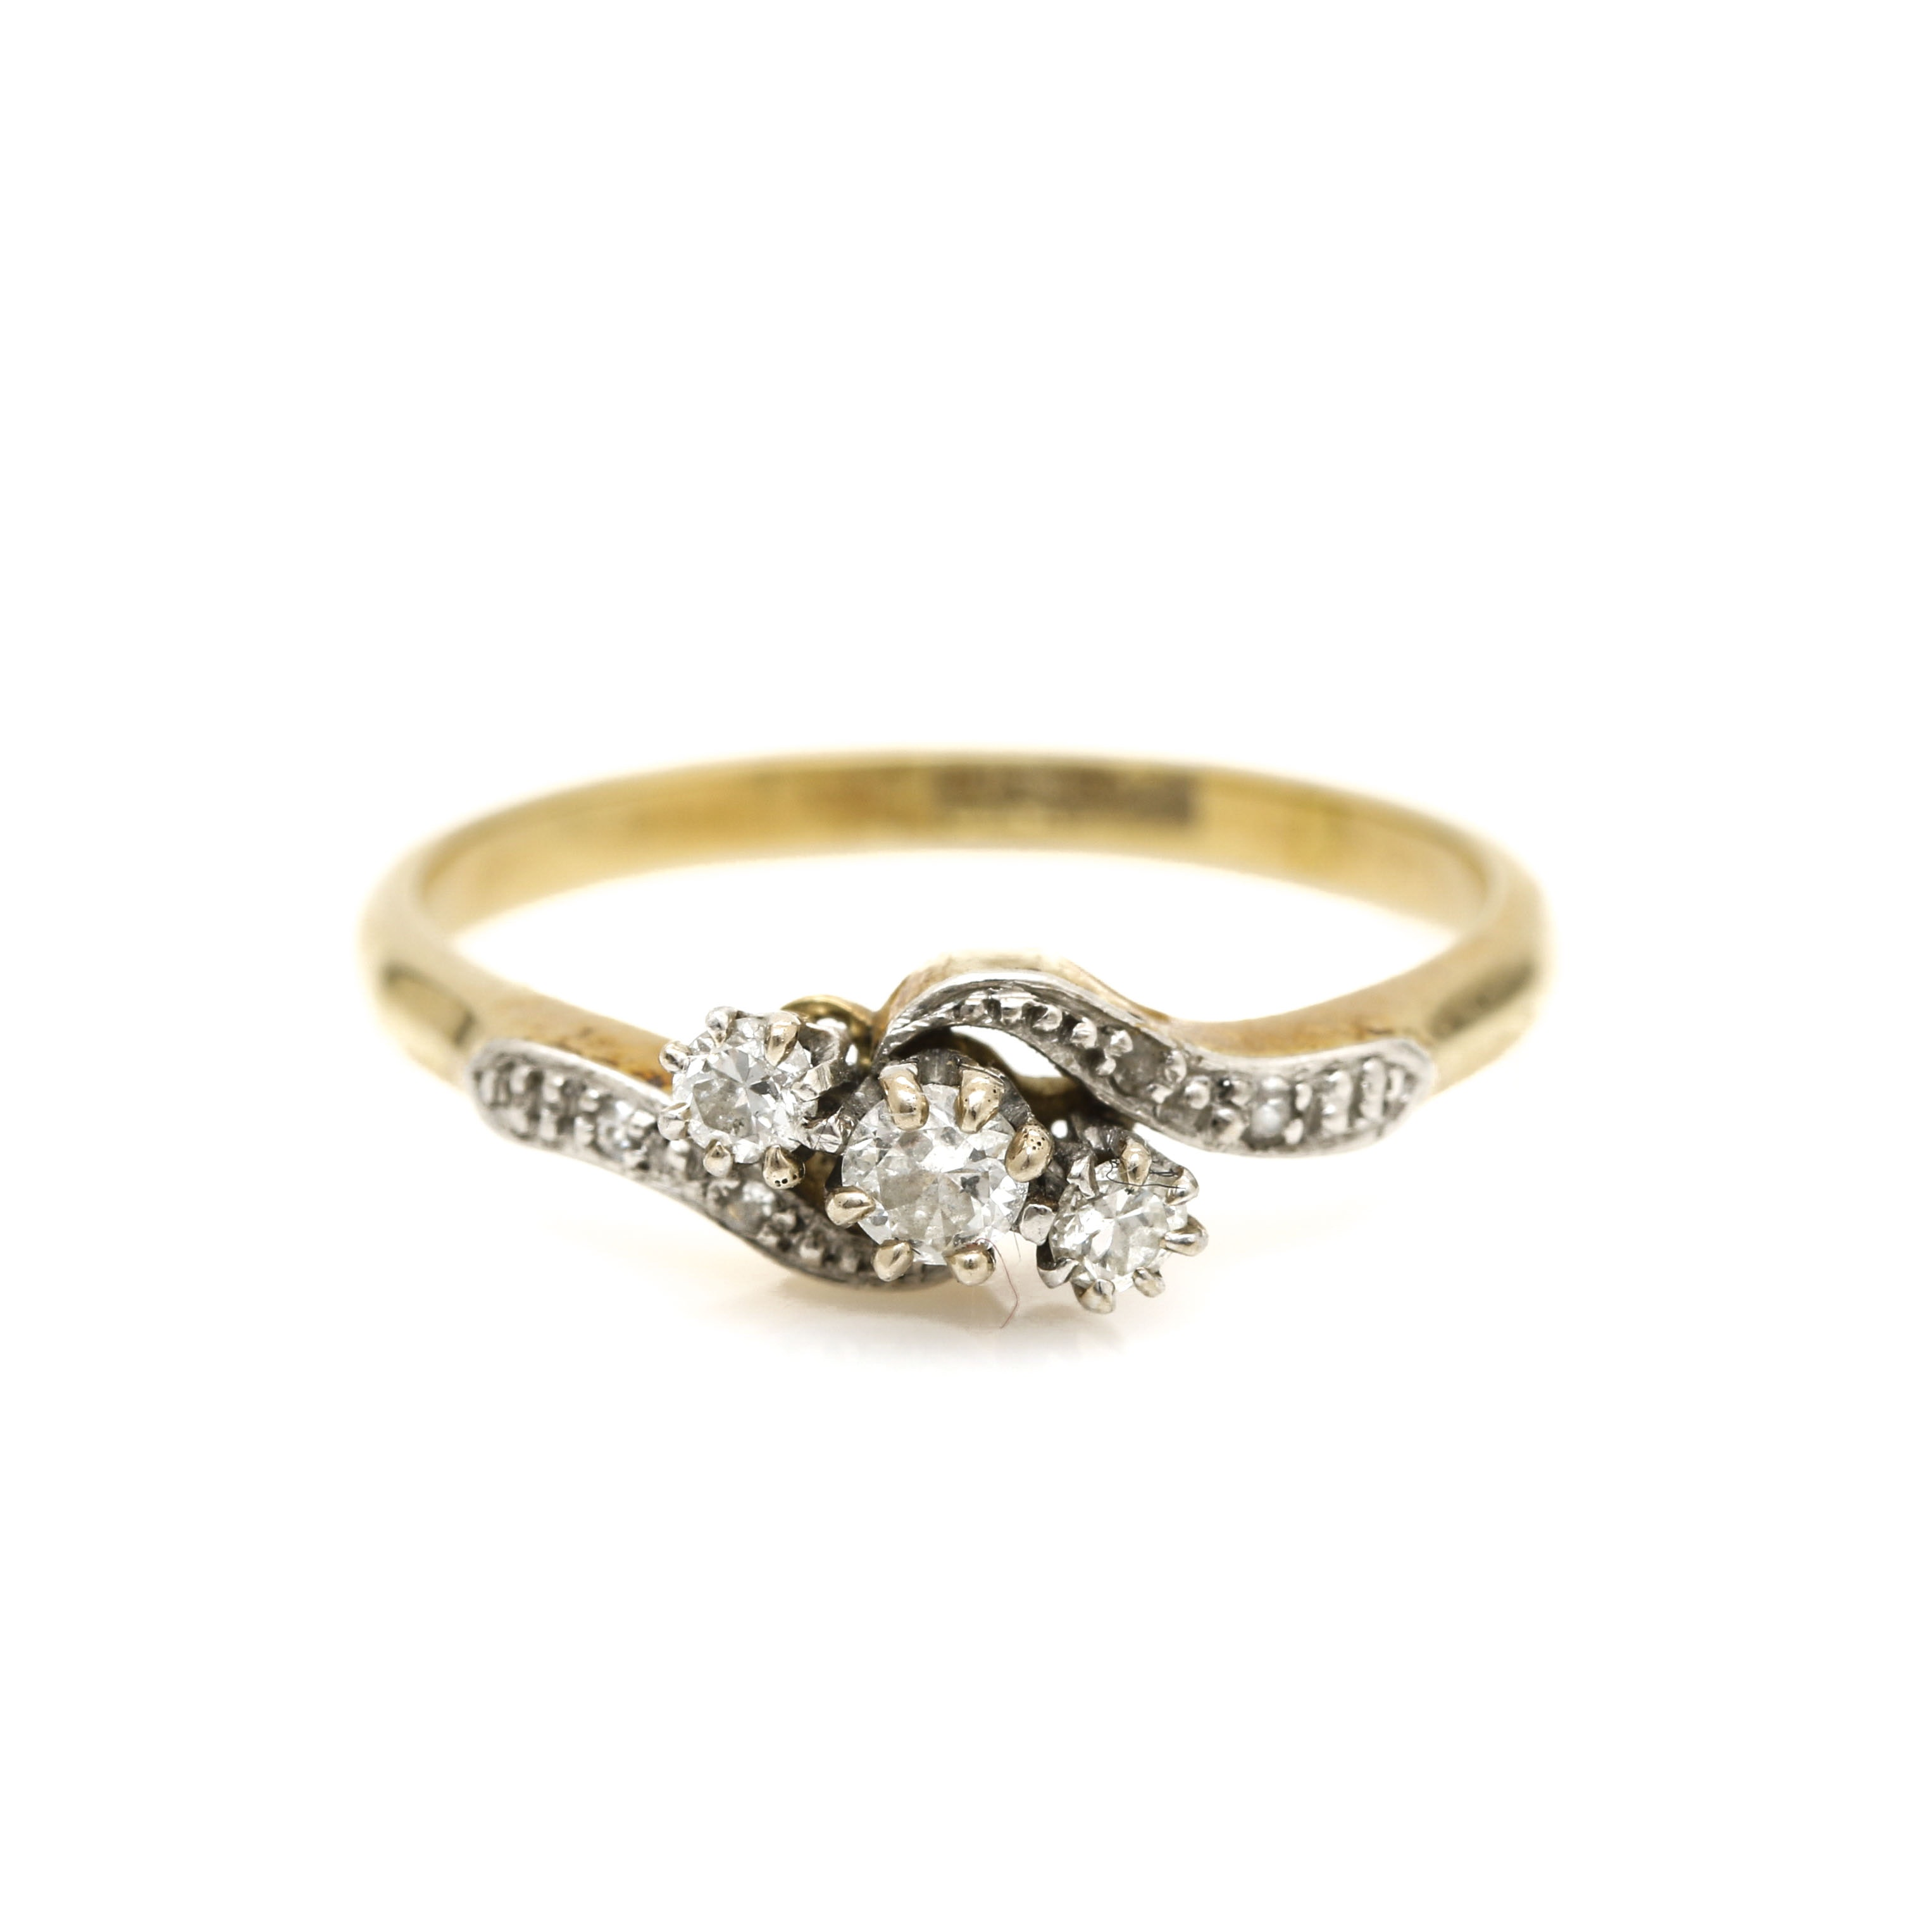 14K Yellow Gold and Platinium Diamond Ring